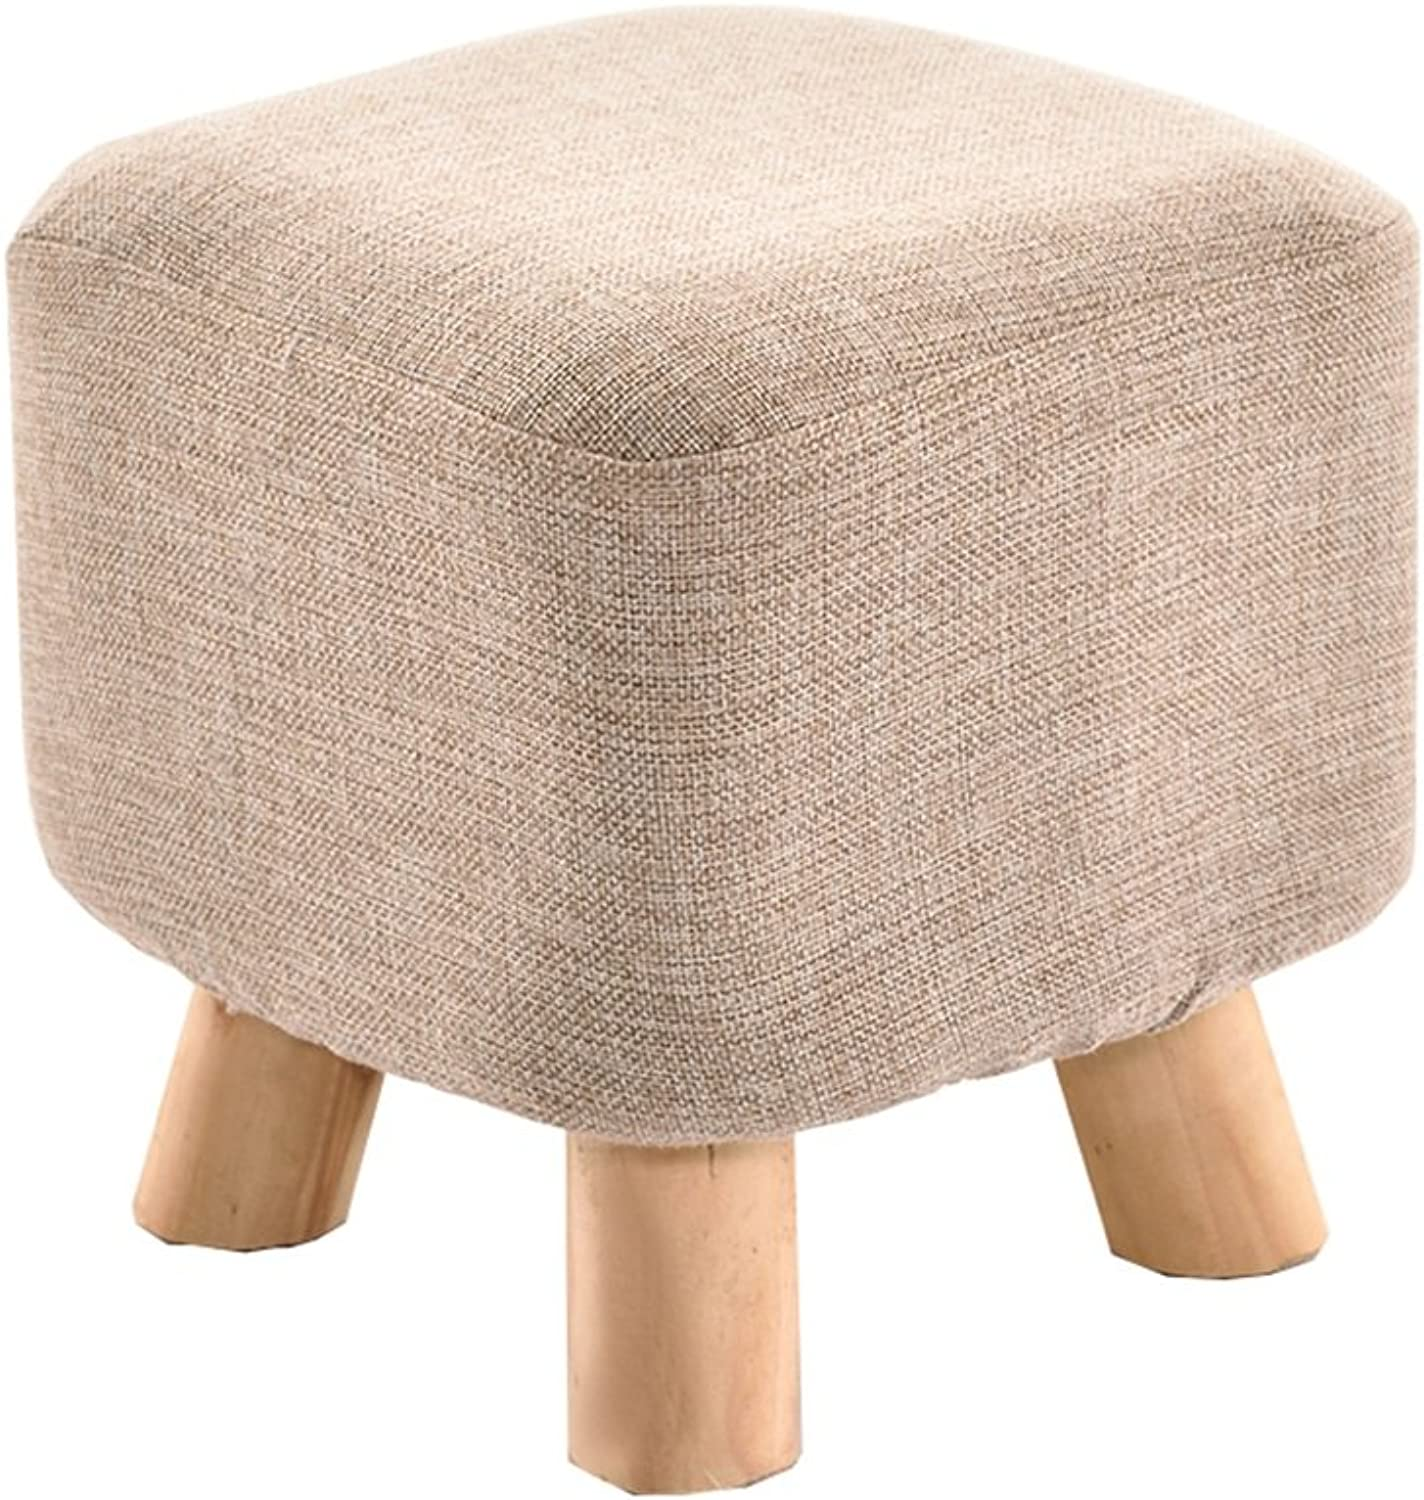 Small Stool Solid Wood Coffee Table Low Stool Fashion Creative Adult shoes Stool Sofa Stool Wooden Bench